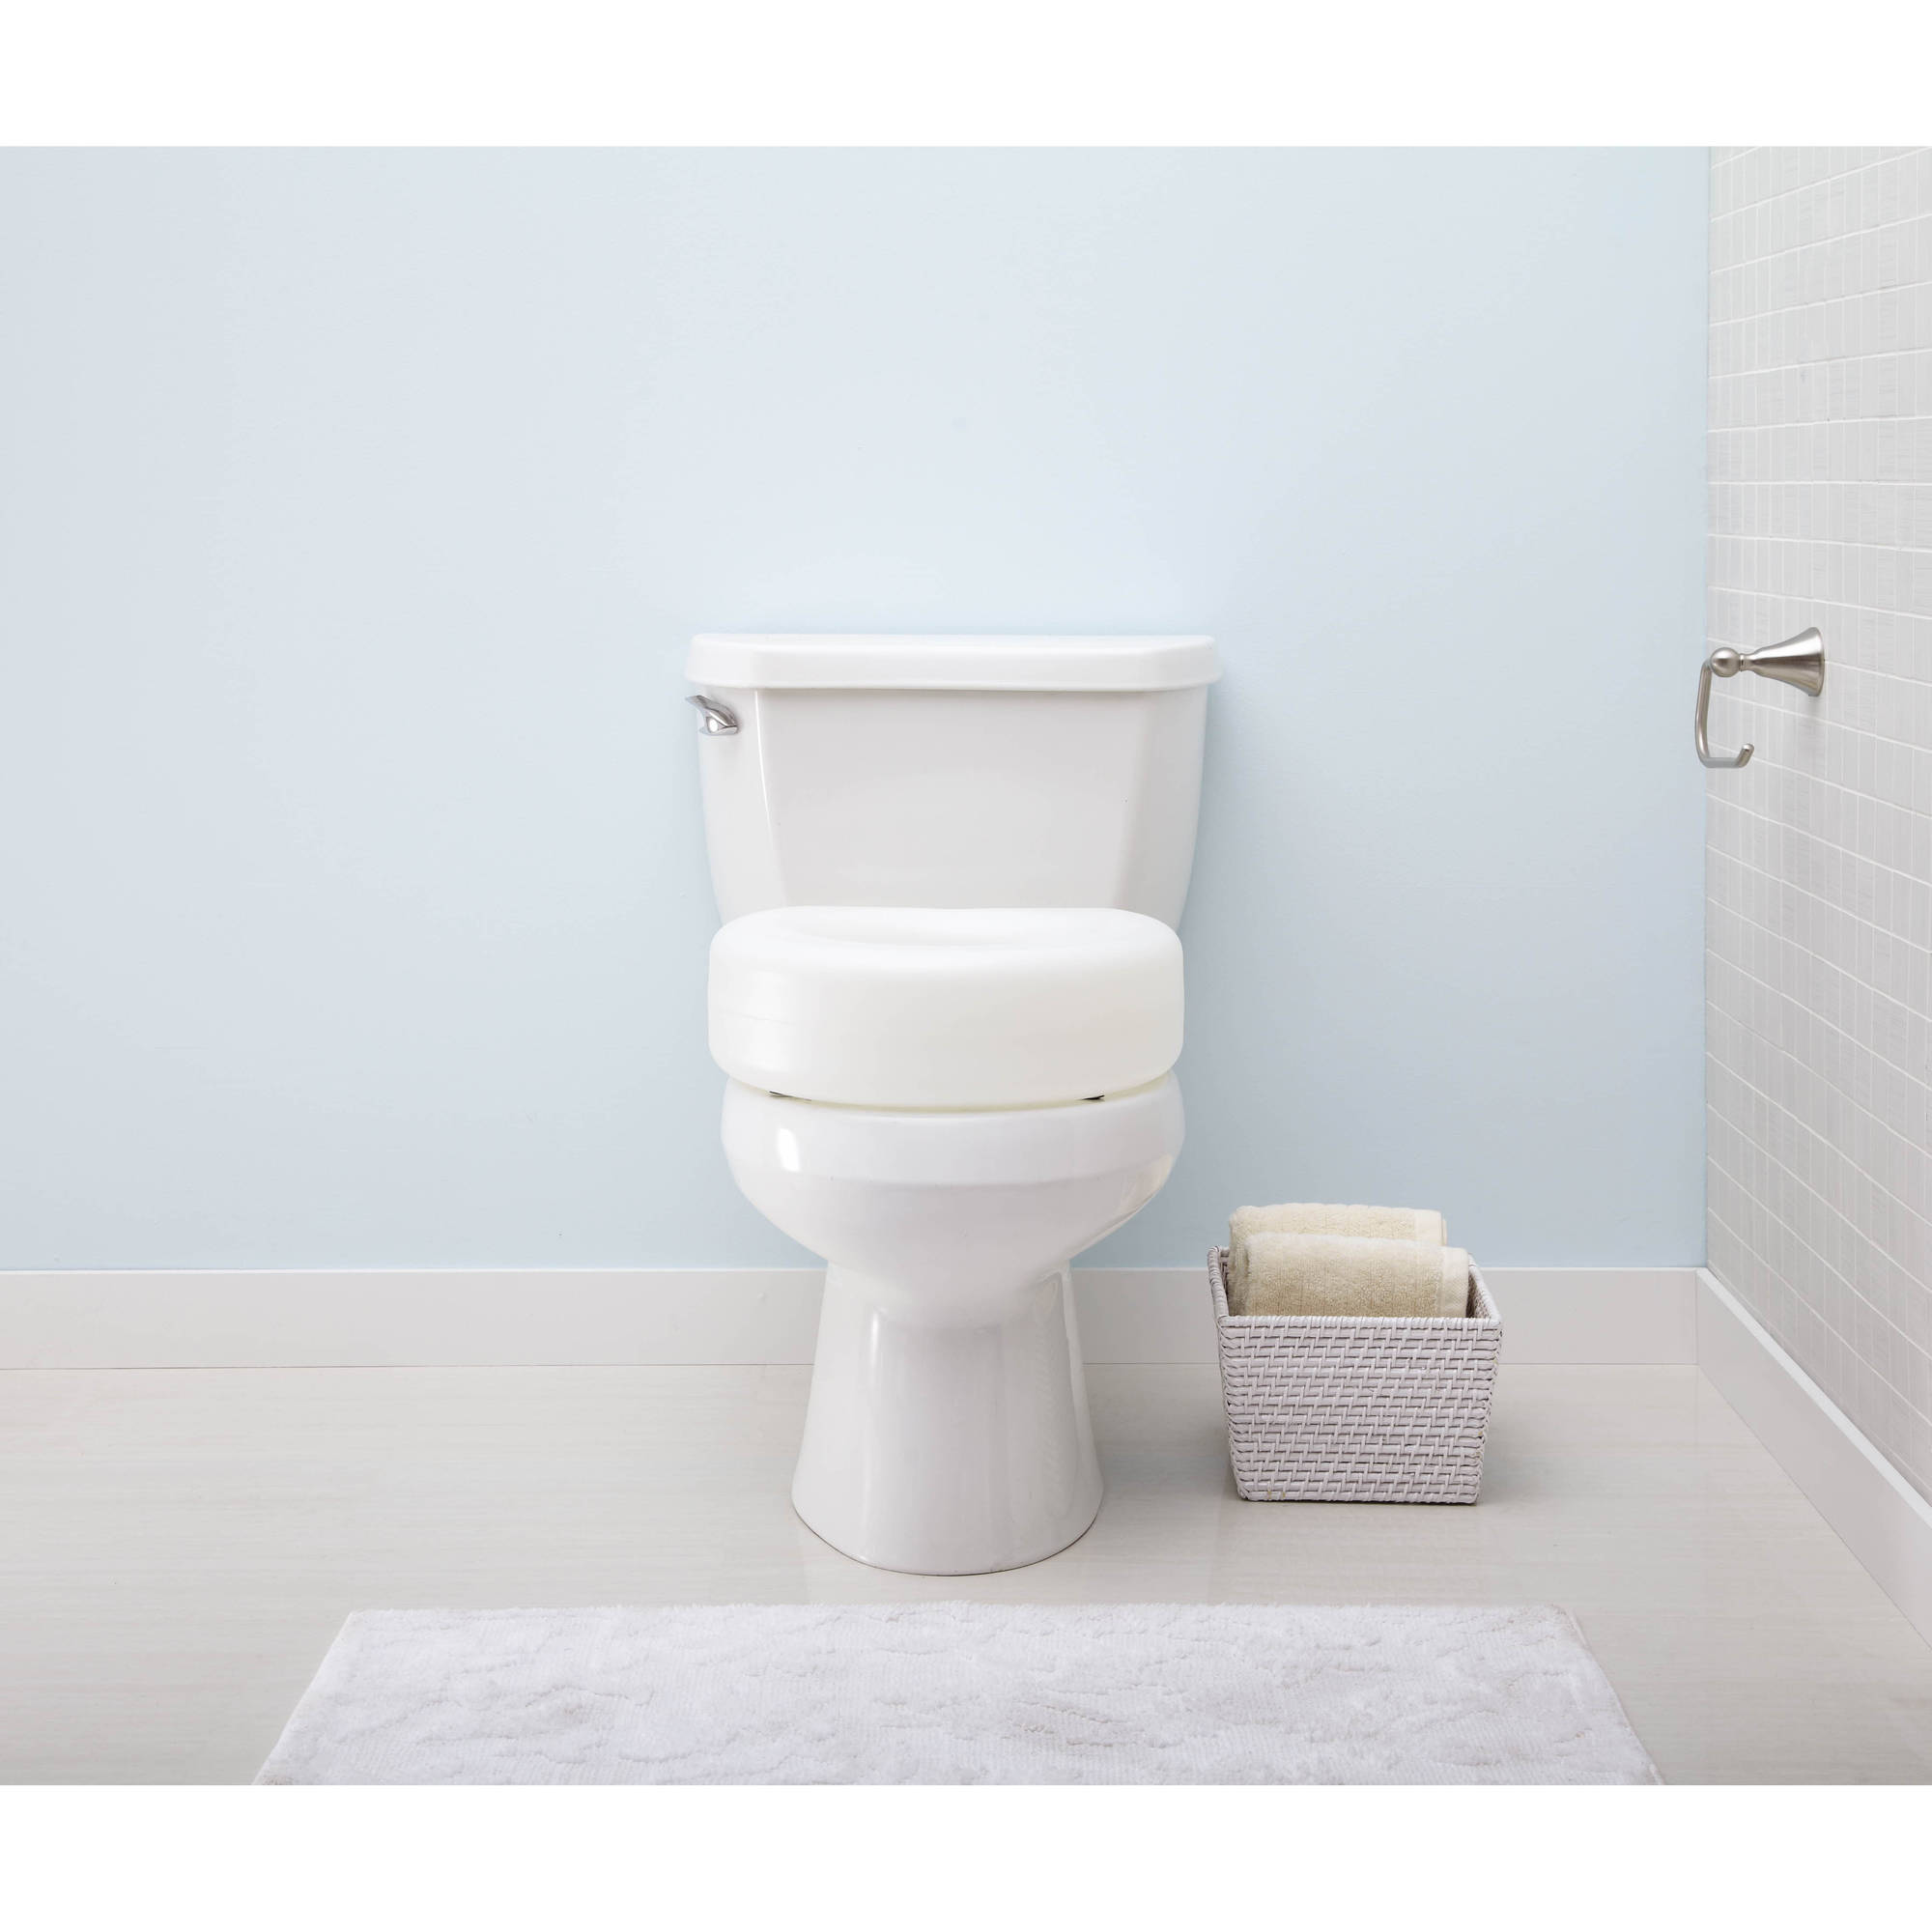 Super Contoured Plastic Raised Toilet Seat Ibusinesslaw Wood Chair Design Ideas Ibusinesslaworg